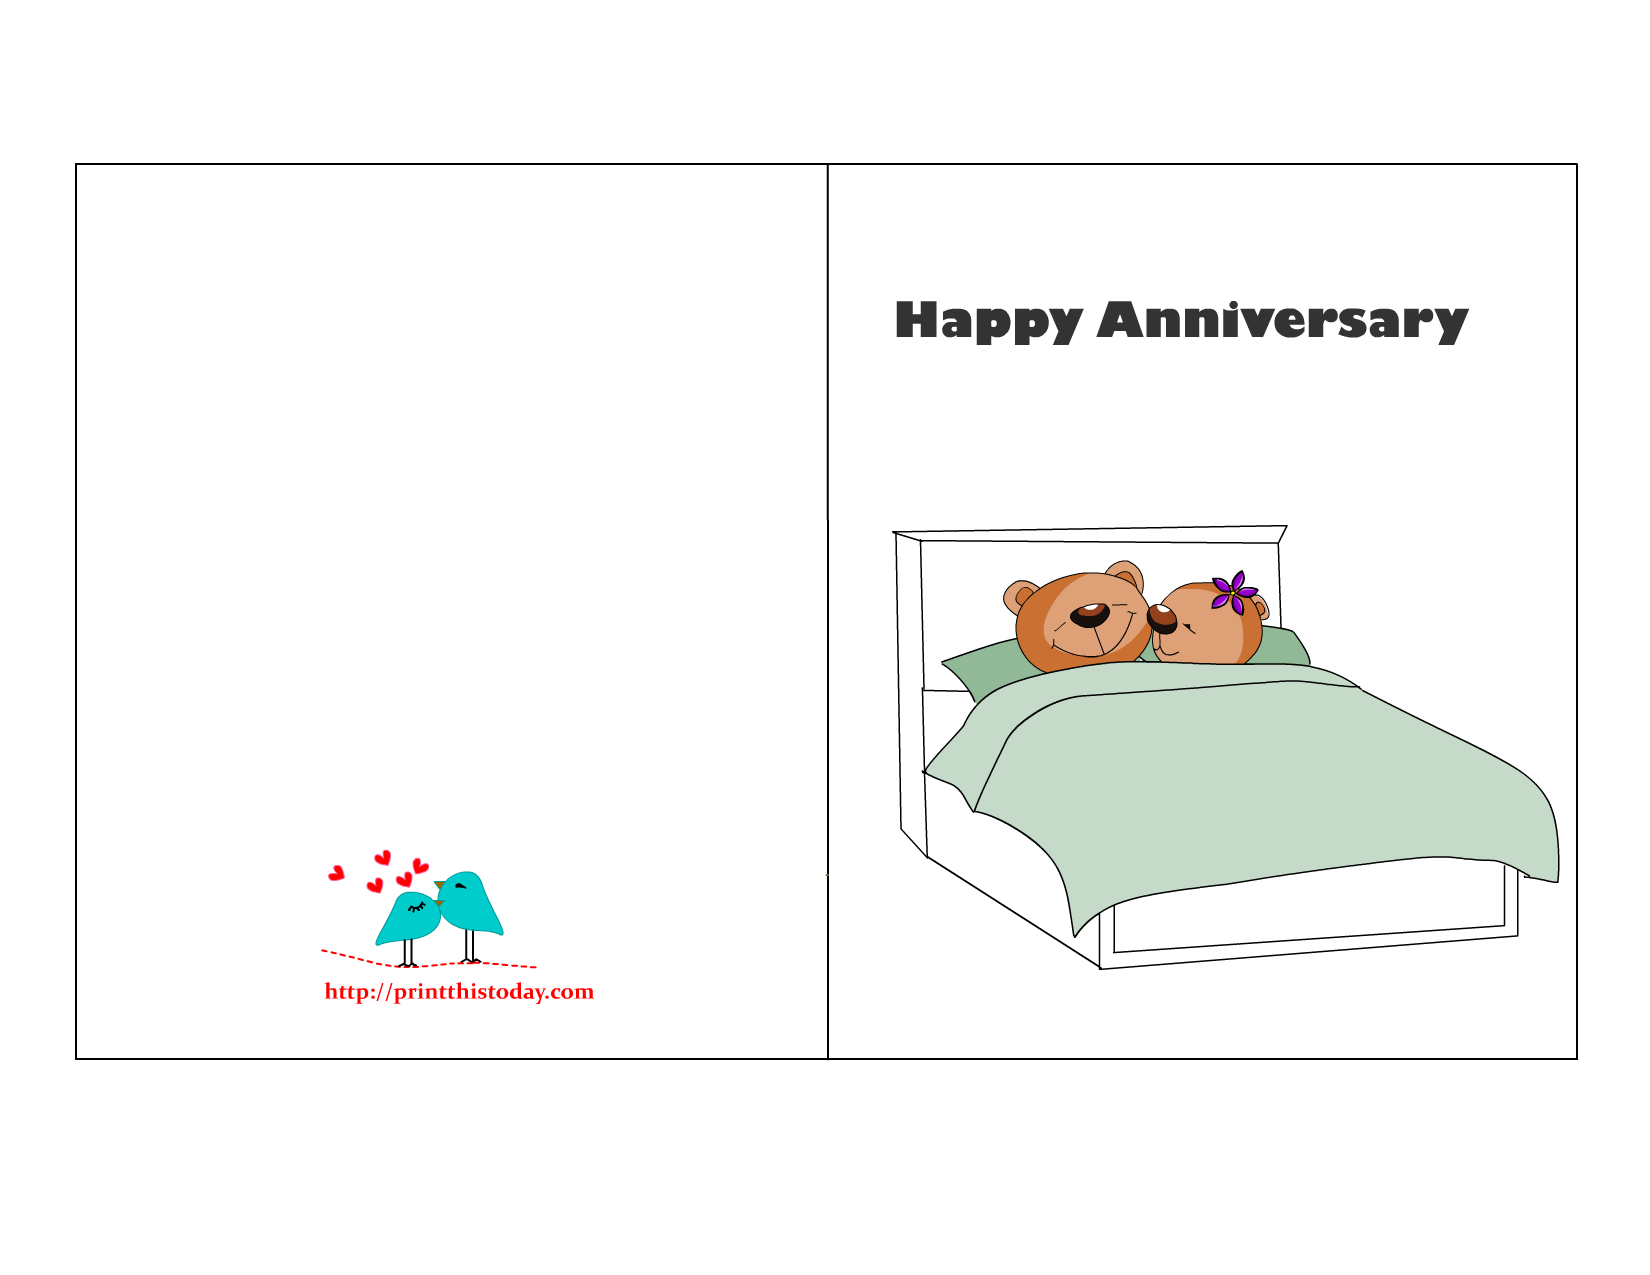 photo regarding Printable Anniversary Cards Free named Cost-free Printable Anniversary Playing cards